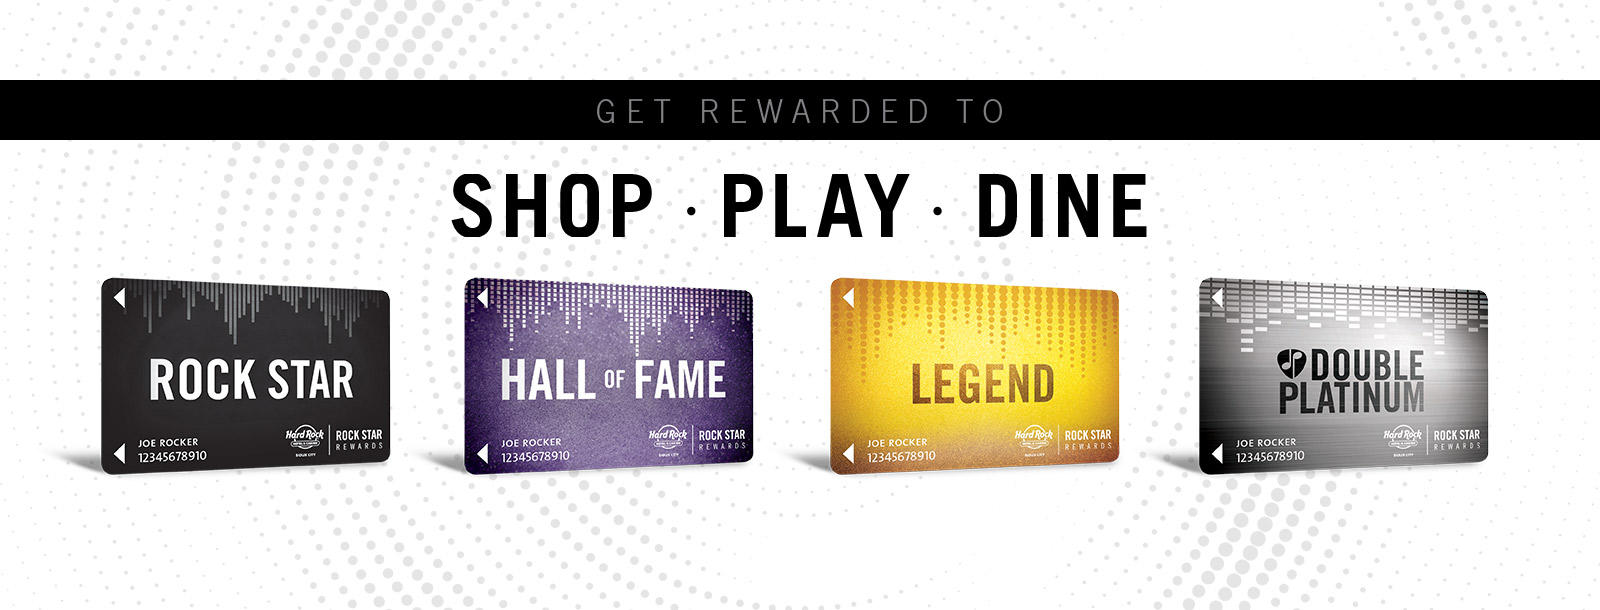 rock star rewards shop play dine slider